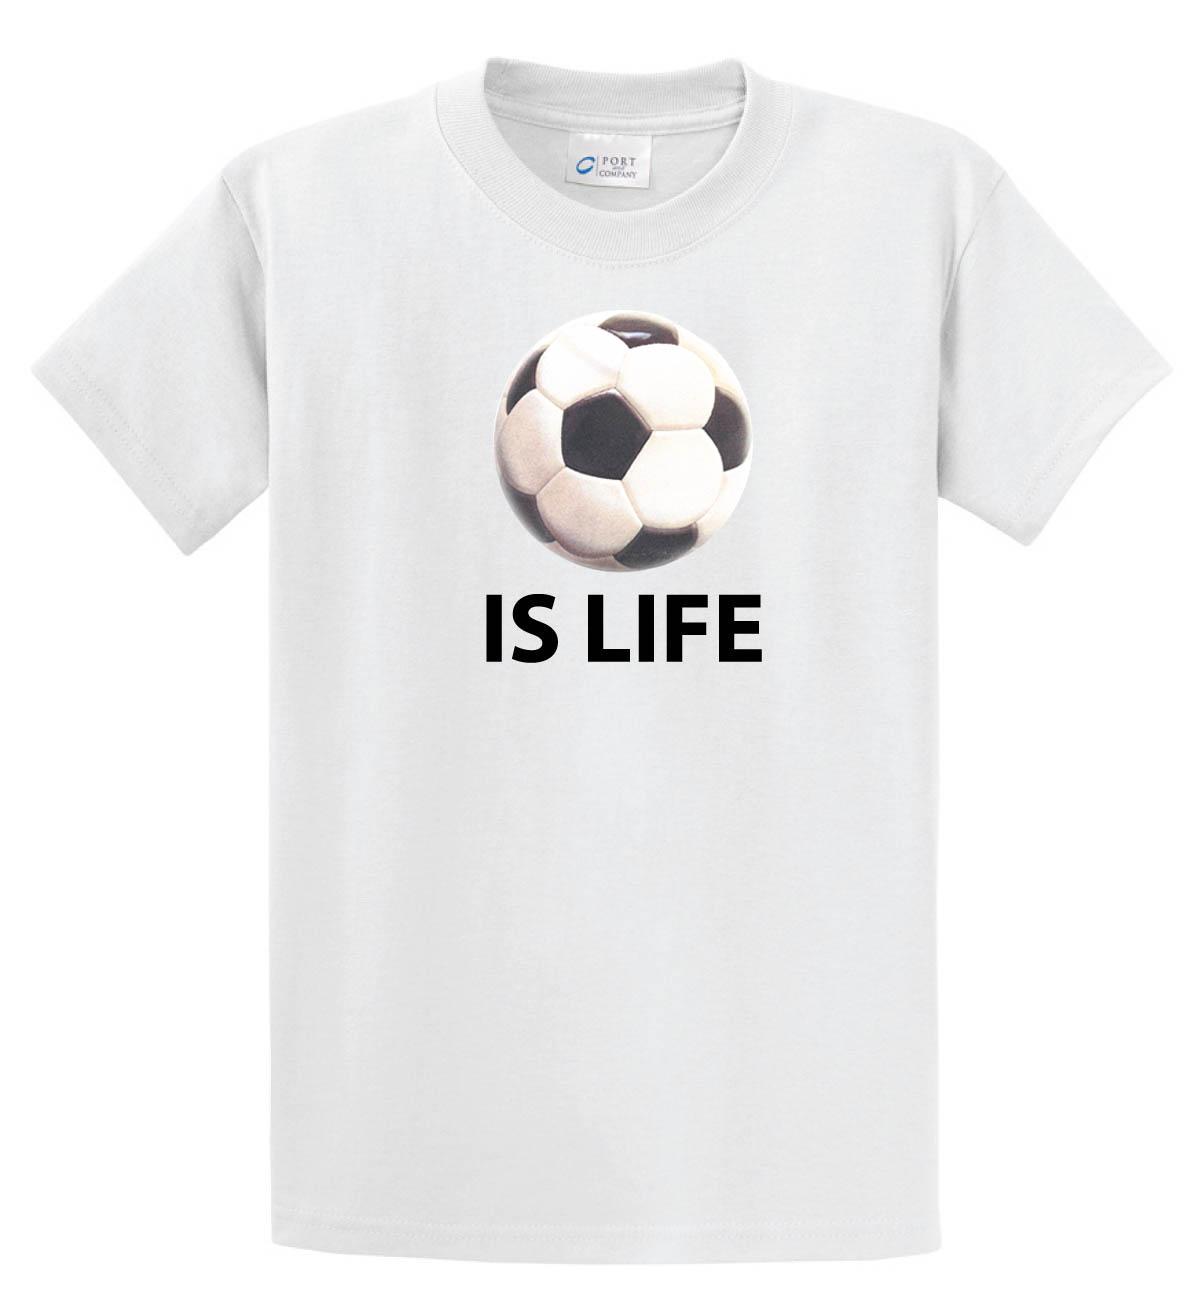 Ball is Life Tshirt (Soccer Edition) in white by Code Four Athletics